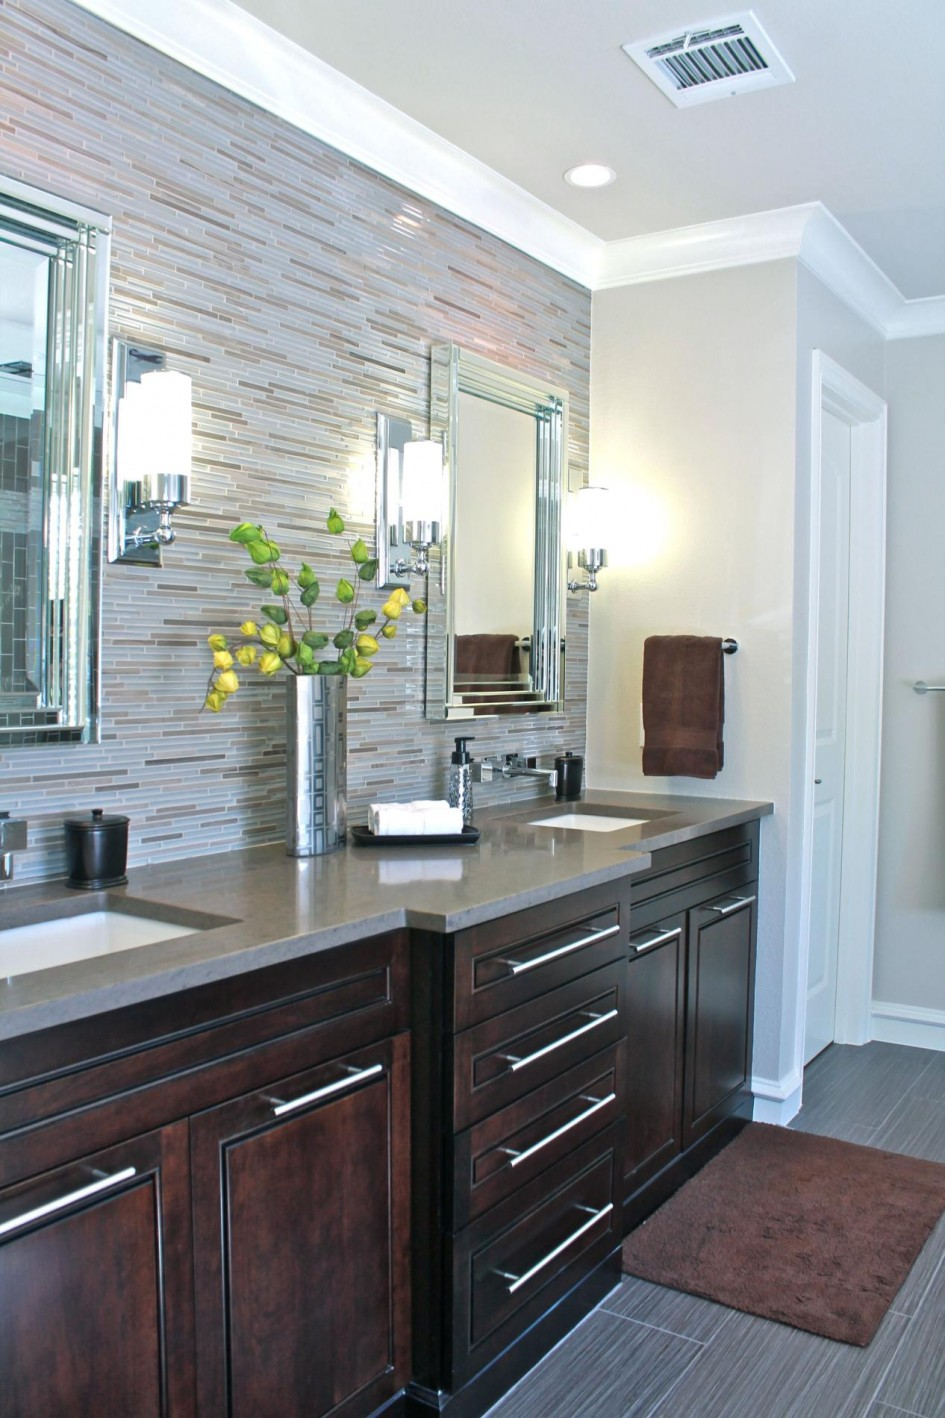 Likable Art Deco Bathroom Ideas With Grey Vanity